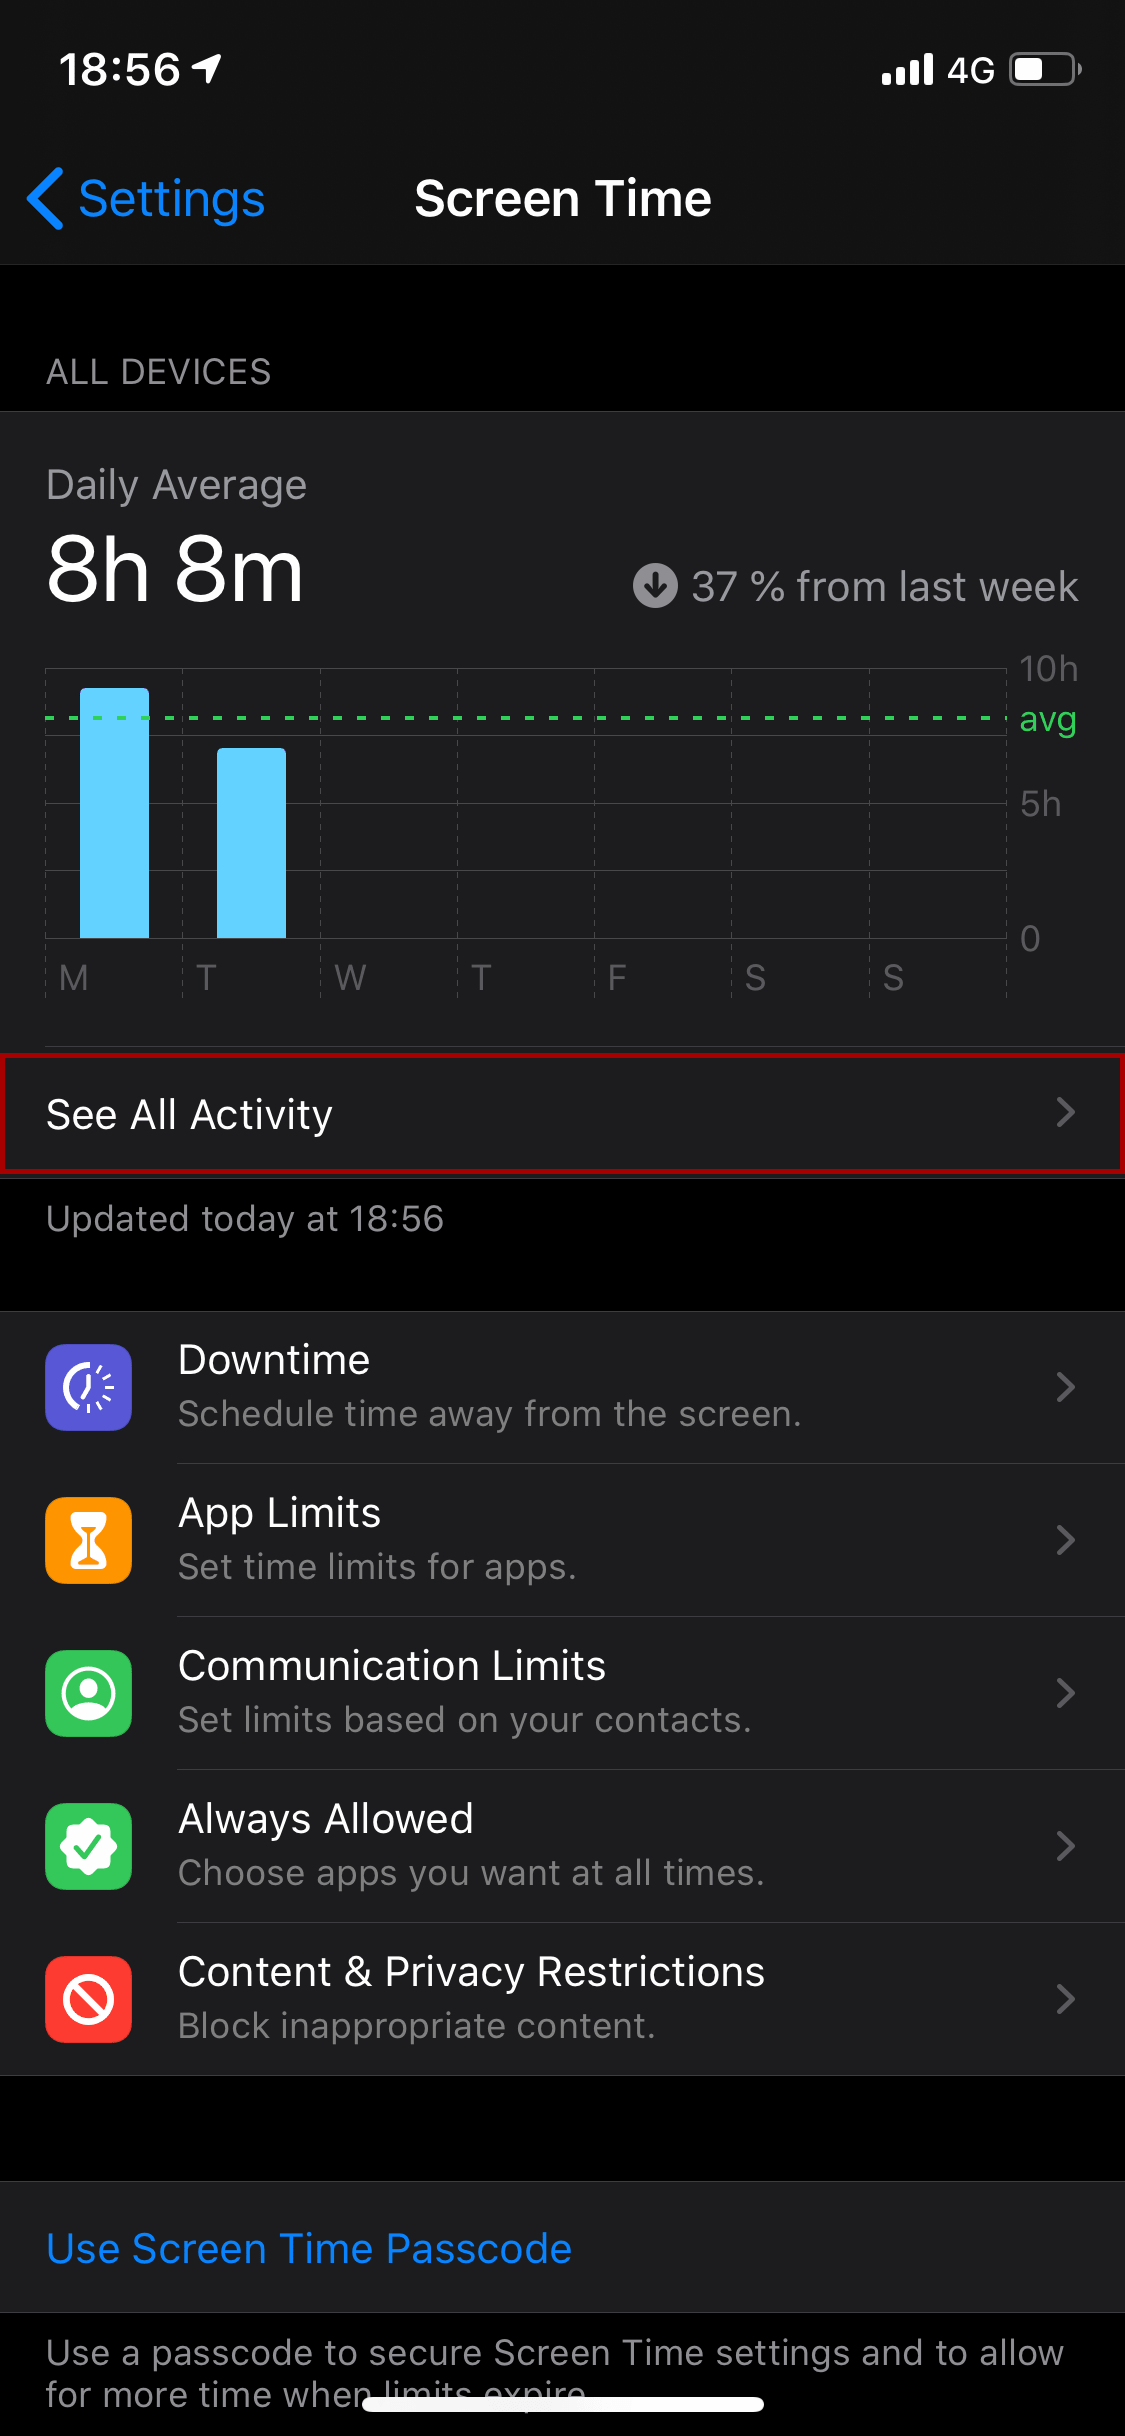 Screen Time: See All Activity